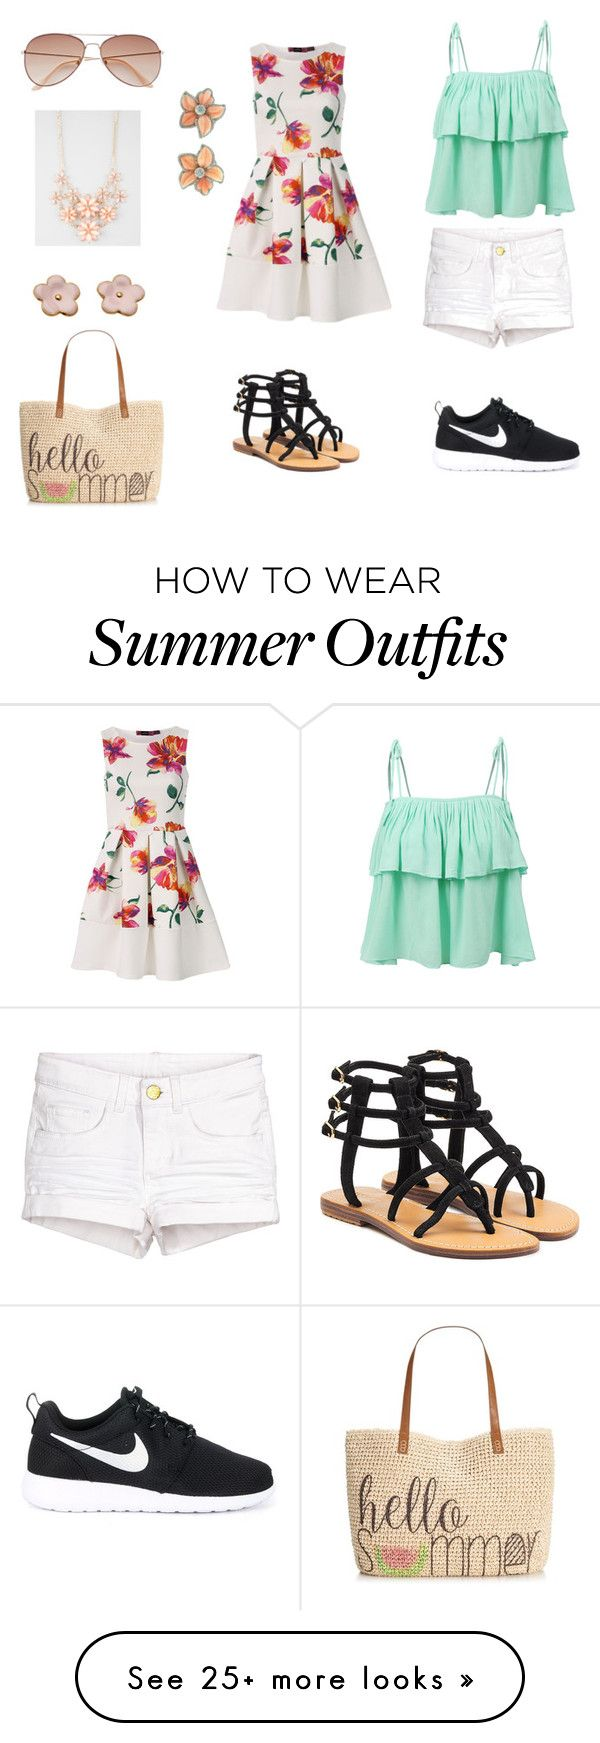 """""""Summer Outfit"""" by ashling22 on Polyvore featuring LE3NO, NIKE, Style & Co., Mystique, H&M and Full Tilt"""